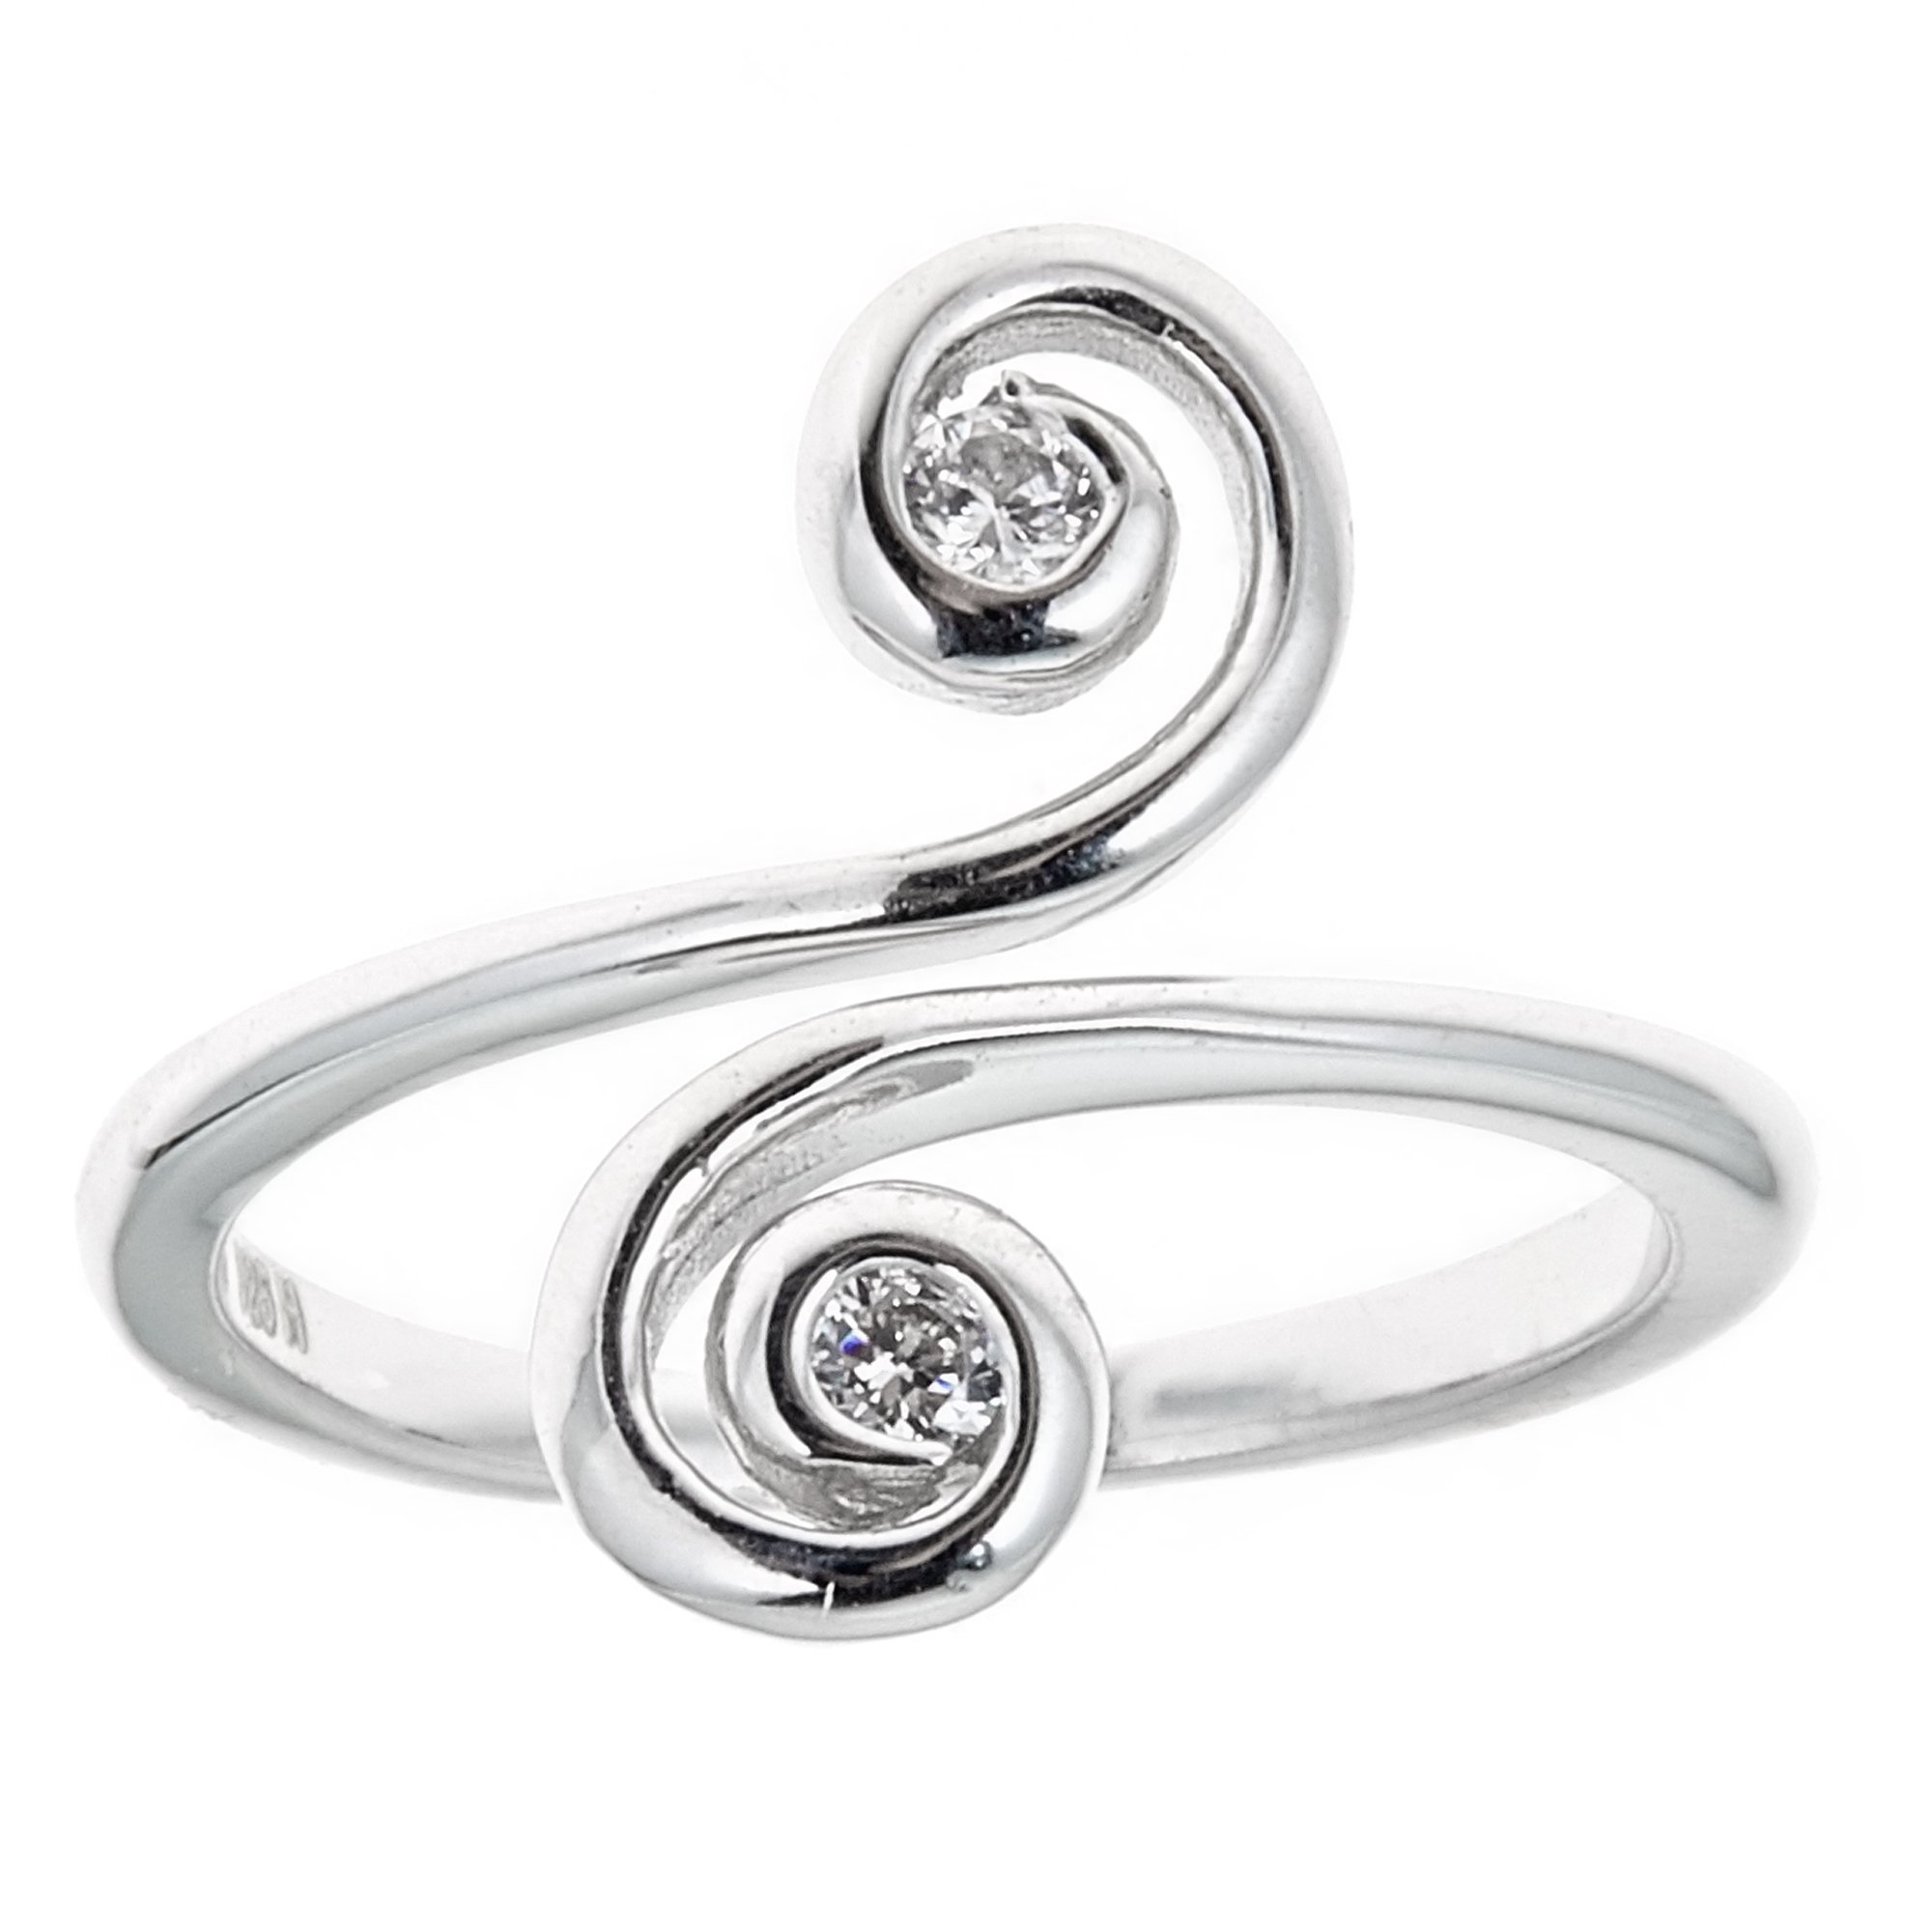 Sterling Silver Swirl Cubic Zirconia Crossover Ring or Toe Ring